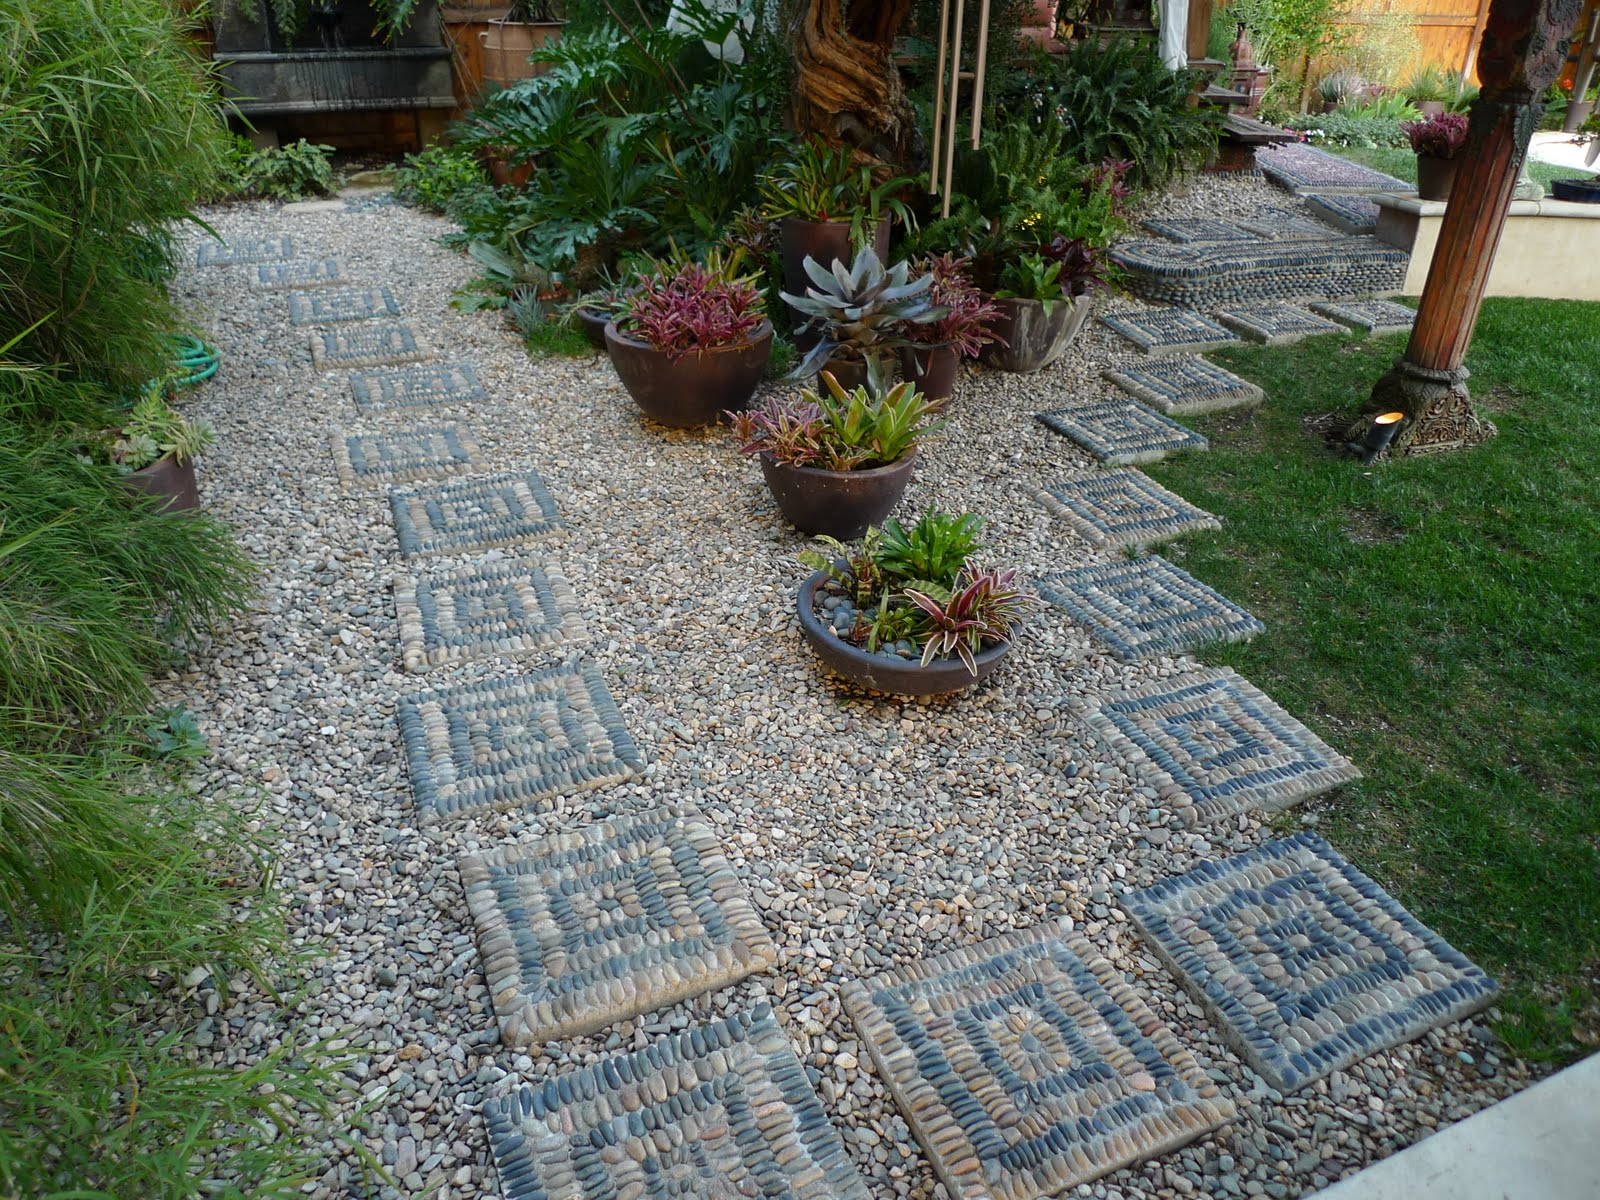 Jeffrey Bales World Of Gardens Building A Pebble Mosaic Stepping Stone inside Decorative Stones For Backyard